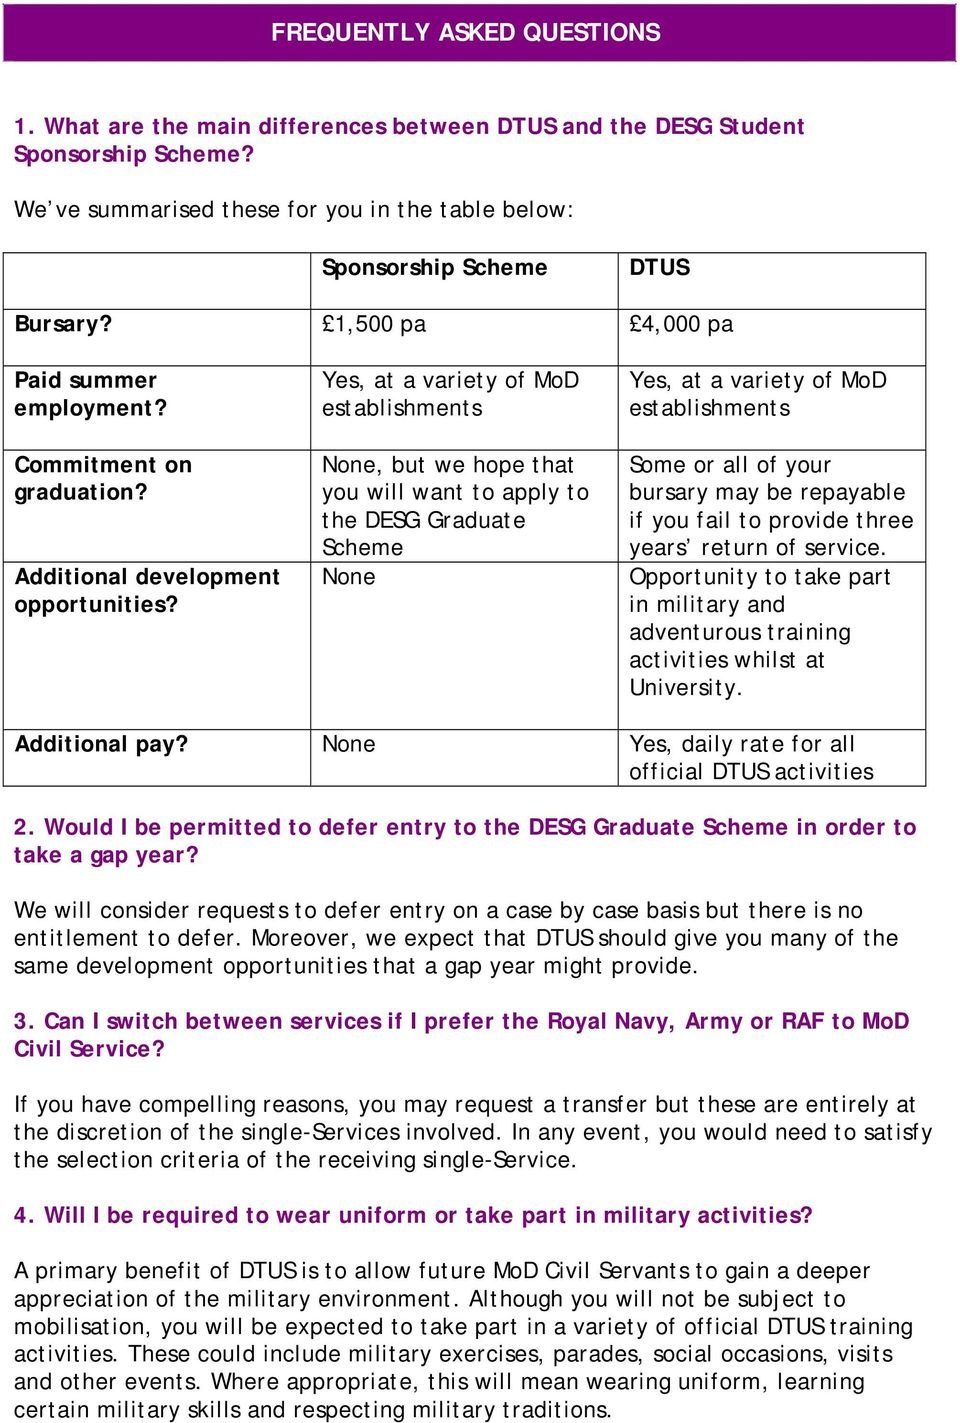 Yes, at a variety of MoD establishments None, but we hope that you will want to apply to the DESG Graduate Scheme None Yes, at a variety of MoD establishments Some or all of your bursary may be